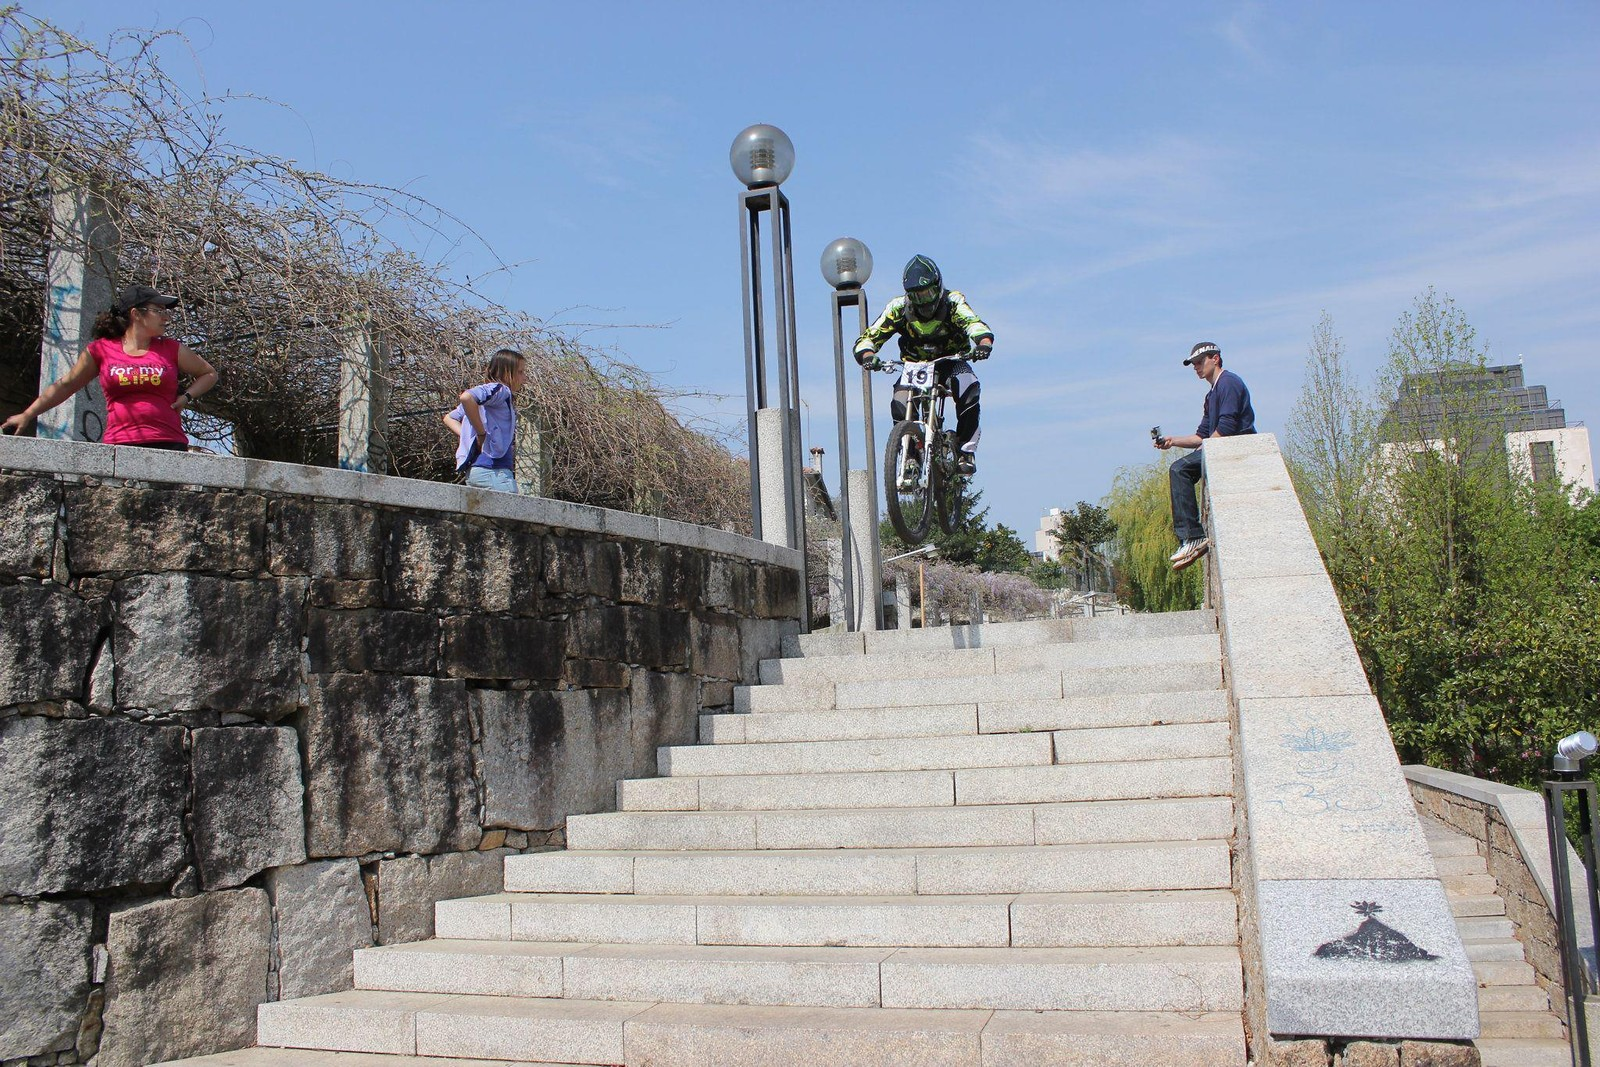 Urban race big jump to stairs - DoubleCrownKing - Mountain Biking Pictures - Vital MTB